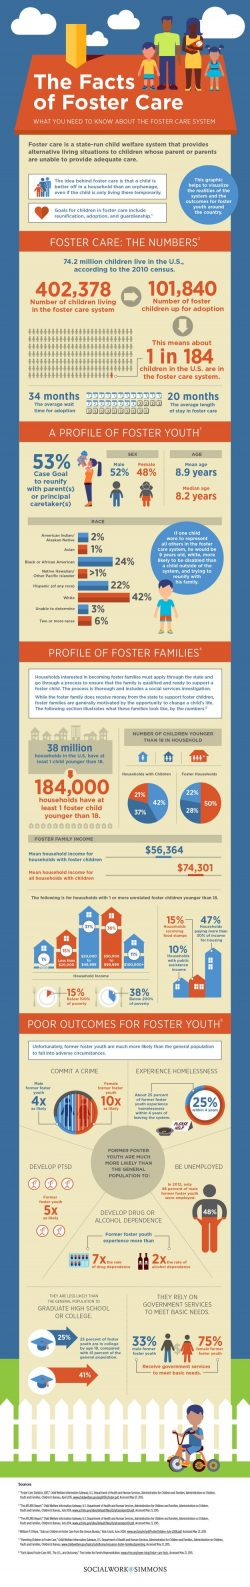 The Facts of Foster Care infographic